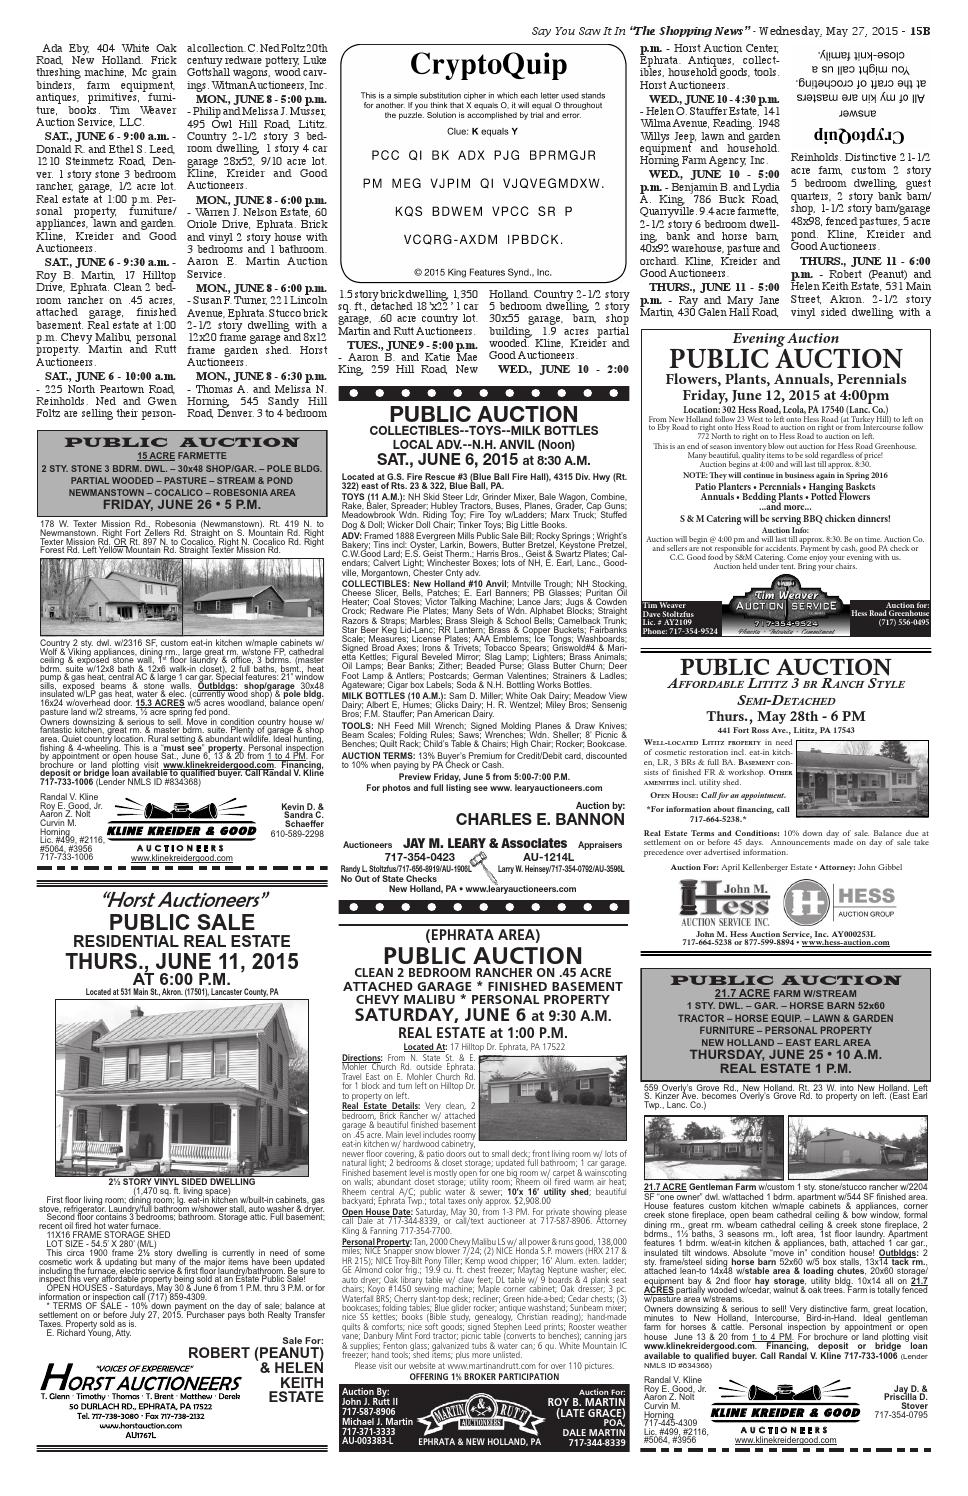 Martin And Rutt Auctioneers >> 5.27 issue by Shopping News - issuu